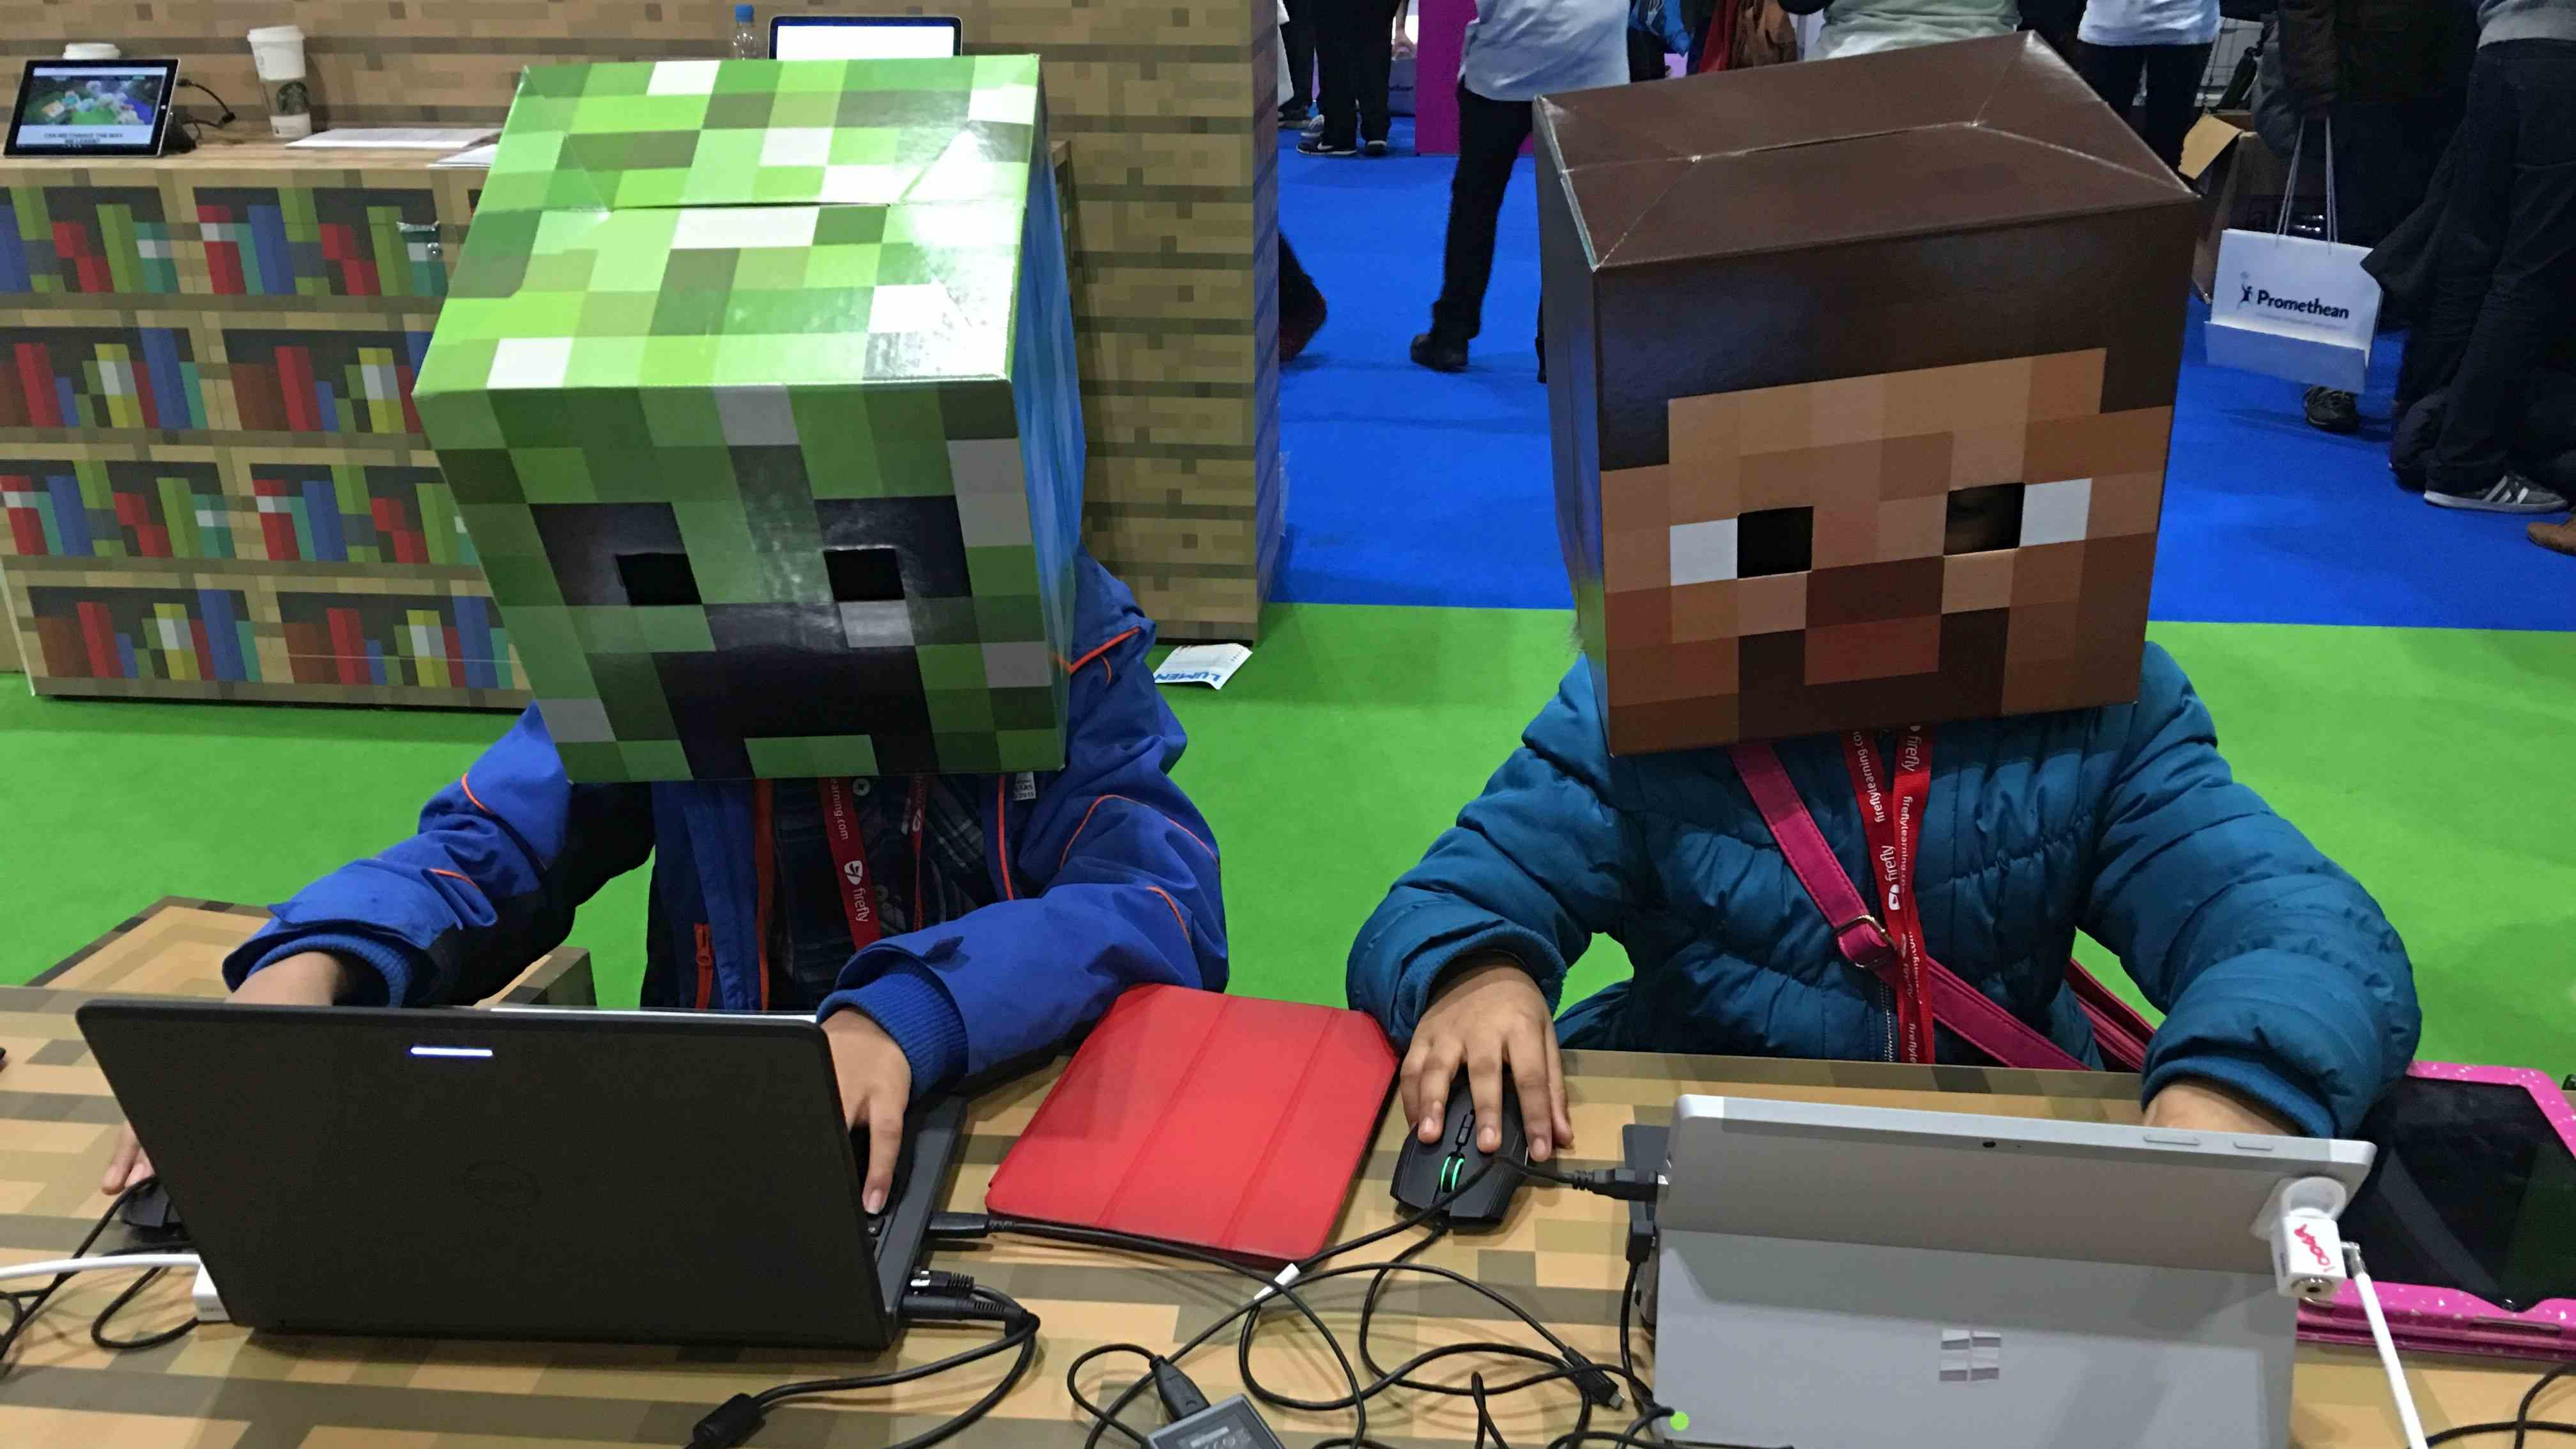 how to join a server in minecraft wii u edition